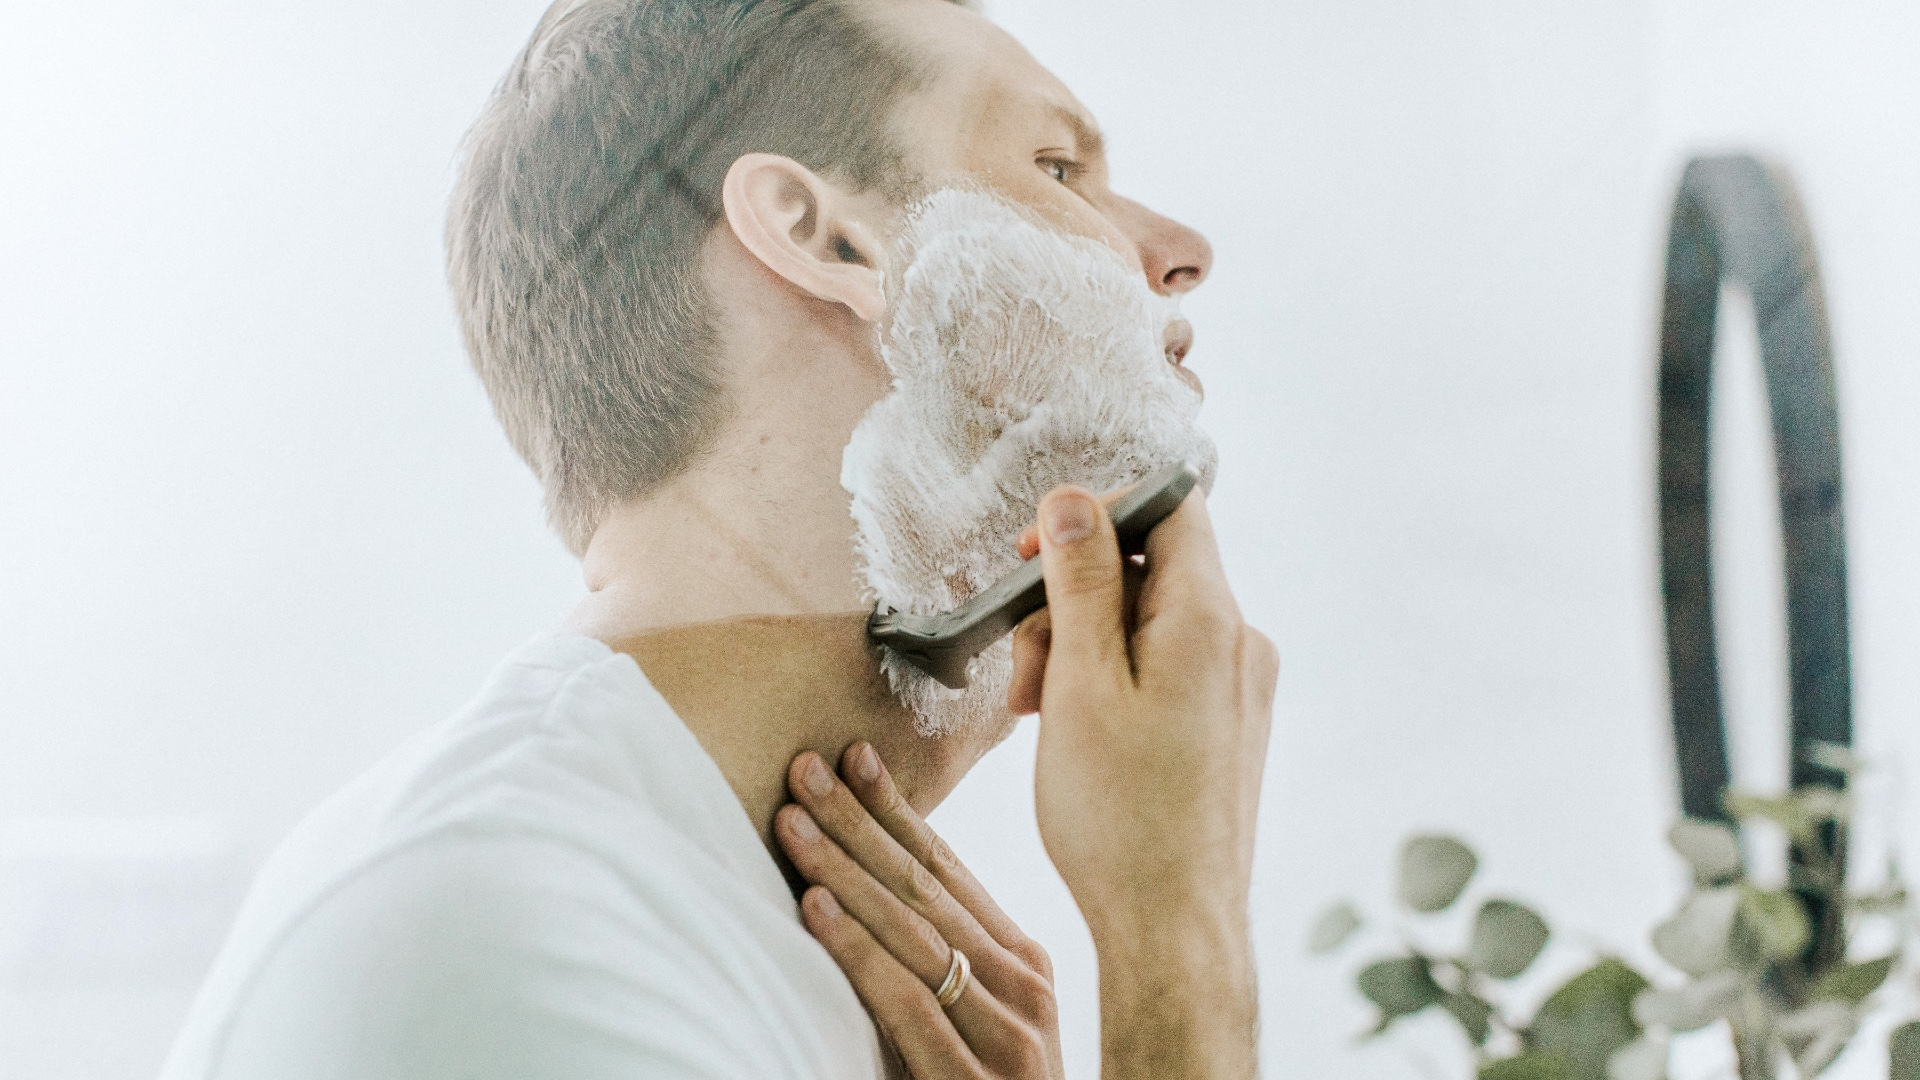 Keep your man shaved